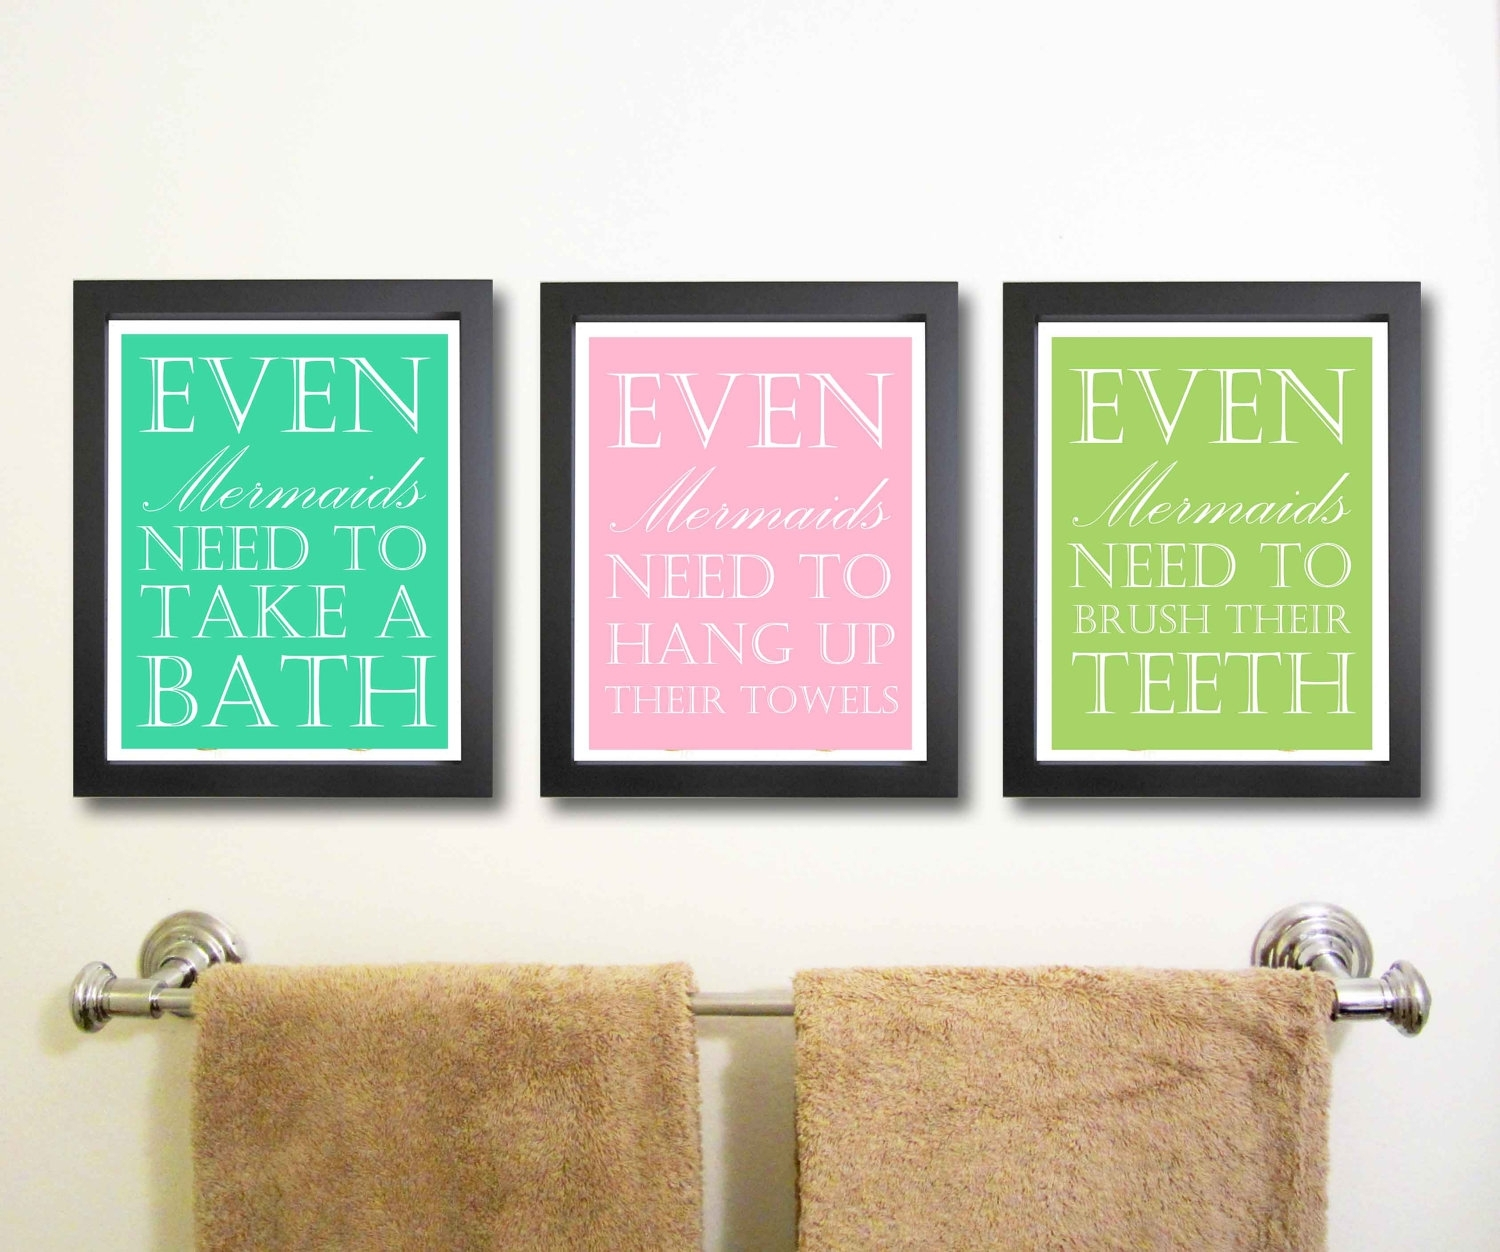 Amazing Of Amazing Bathroom Art Decor Guest Bathroom Wall #2585 Throughout Most Recently Released Bathroom Wall Art Decors (View 2 of 15)